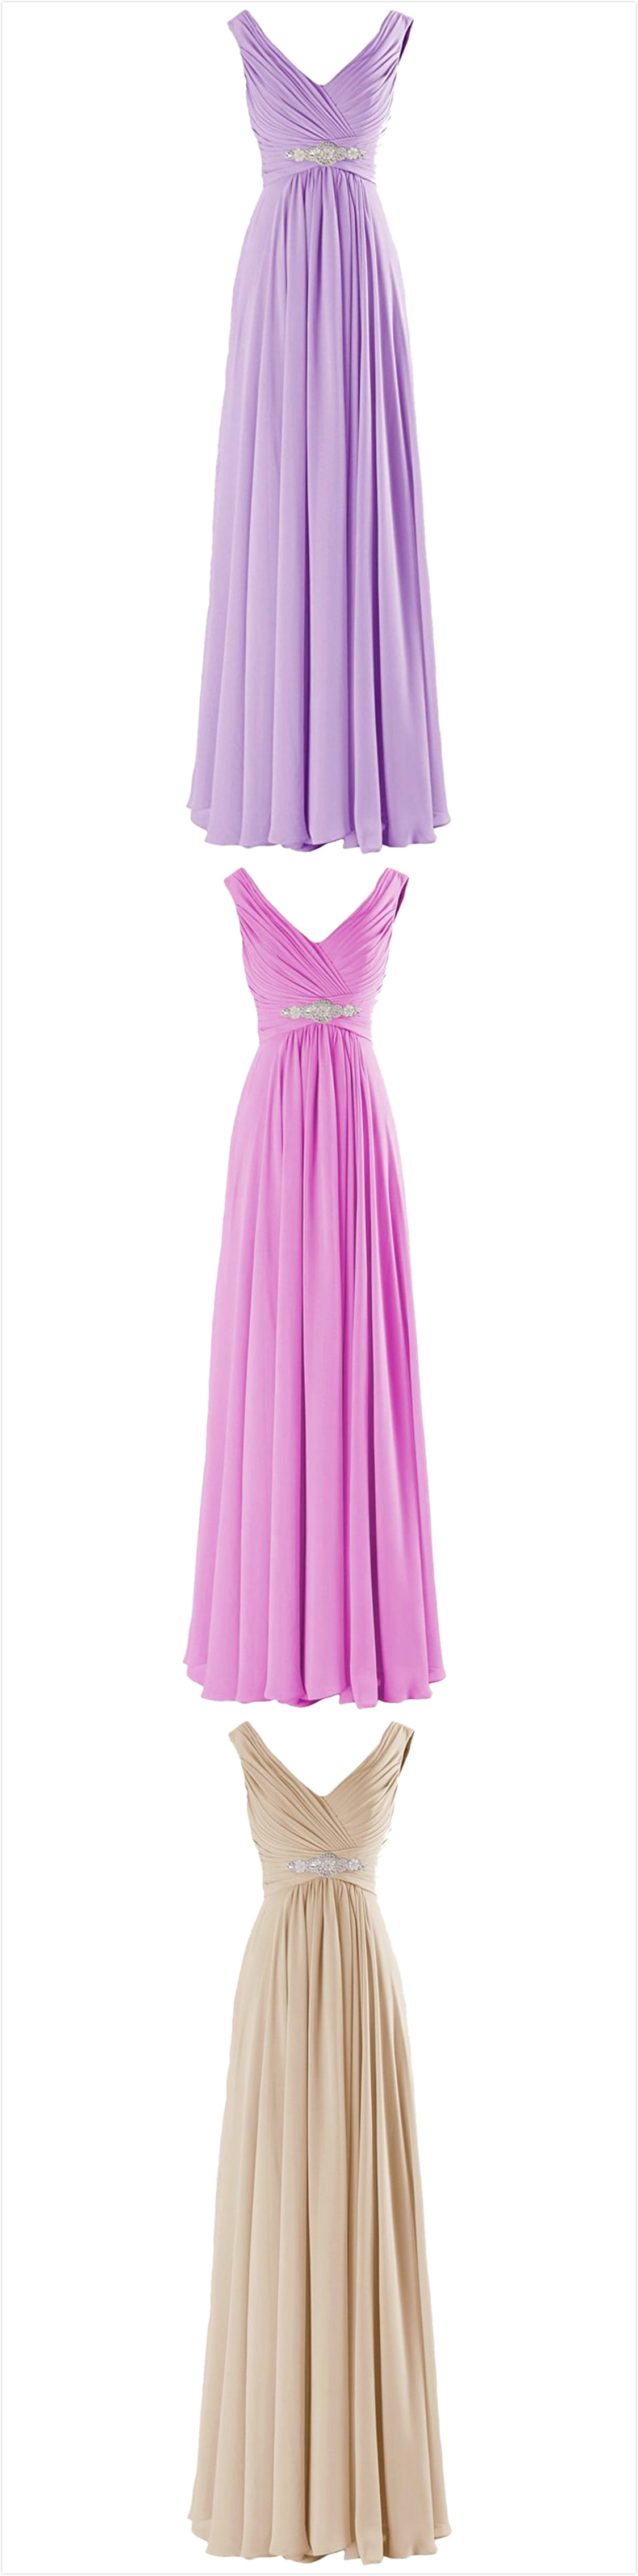 Lilac dress for wedding  Pin by Desiree Wilson on  Women Outfits   Pinterest